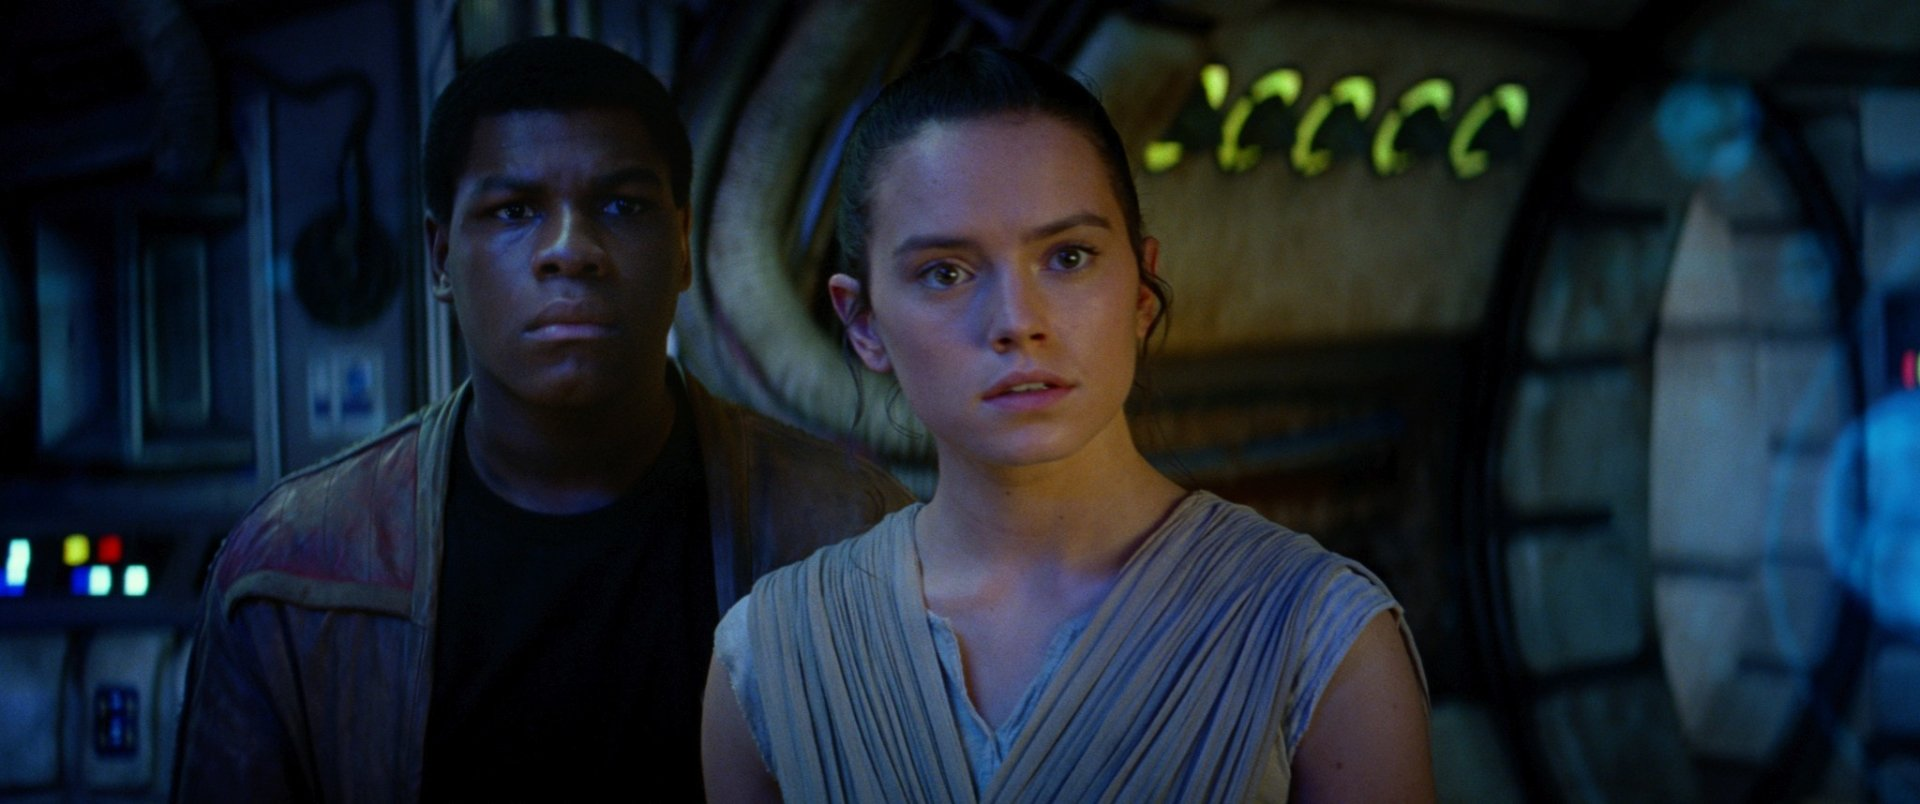 Movie - Star Wars Episode VII: The Force Awakens  Star Wars Rey (Star Wars) Daisy Ridley John Boyega Finn (Star Wars) Wallpaper